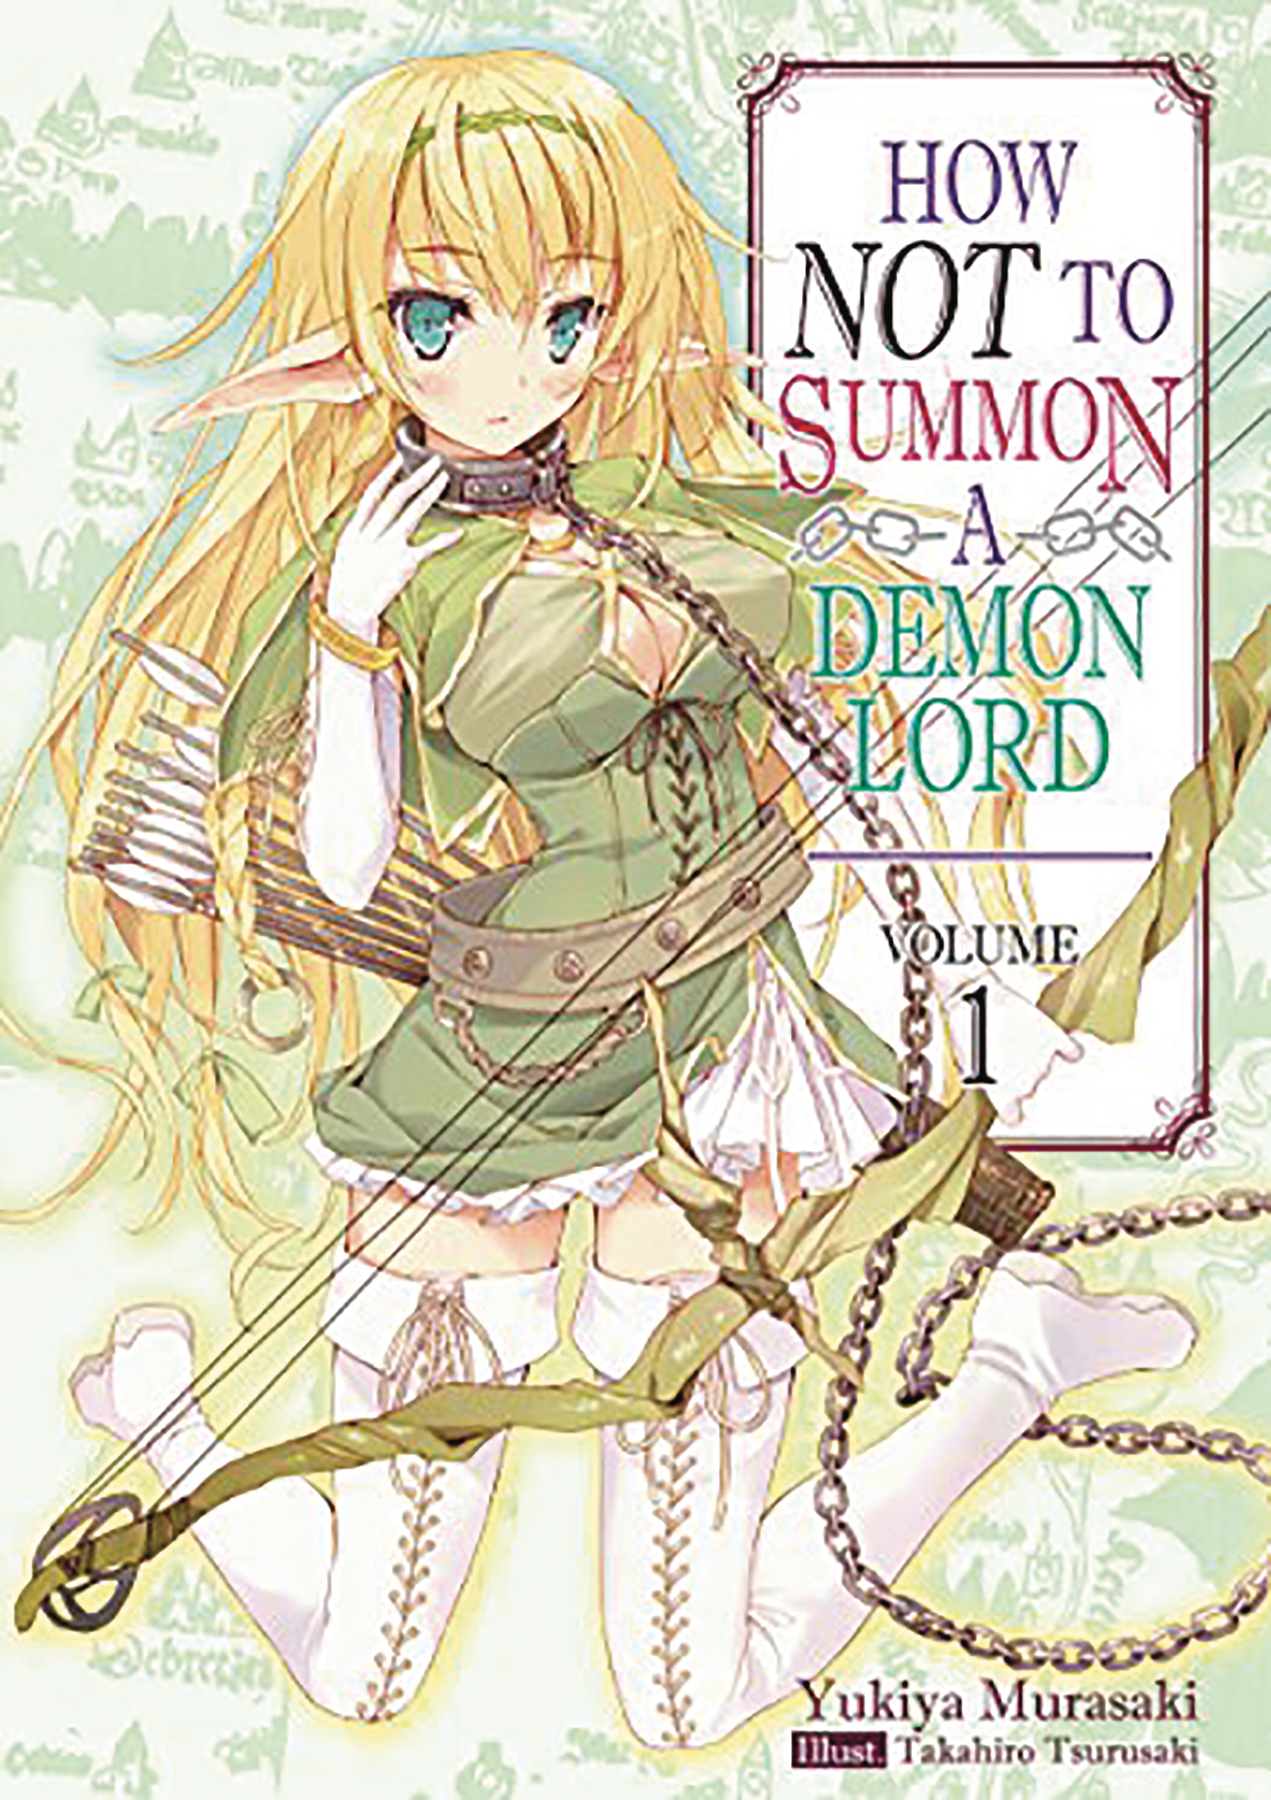 HOW NOT TO SUMMON DEMON LORD GN VOL 01 (RES)